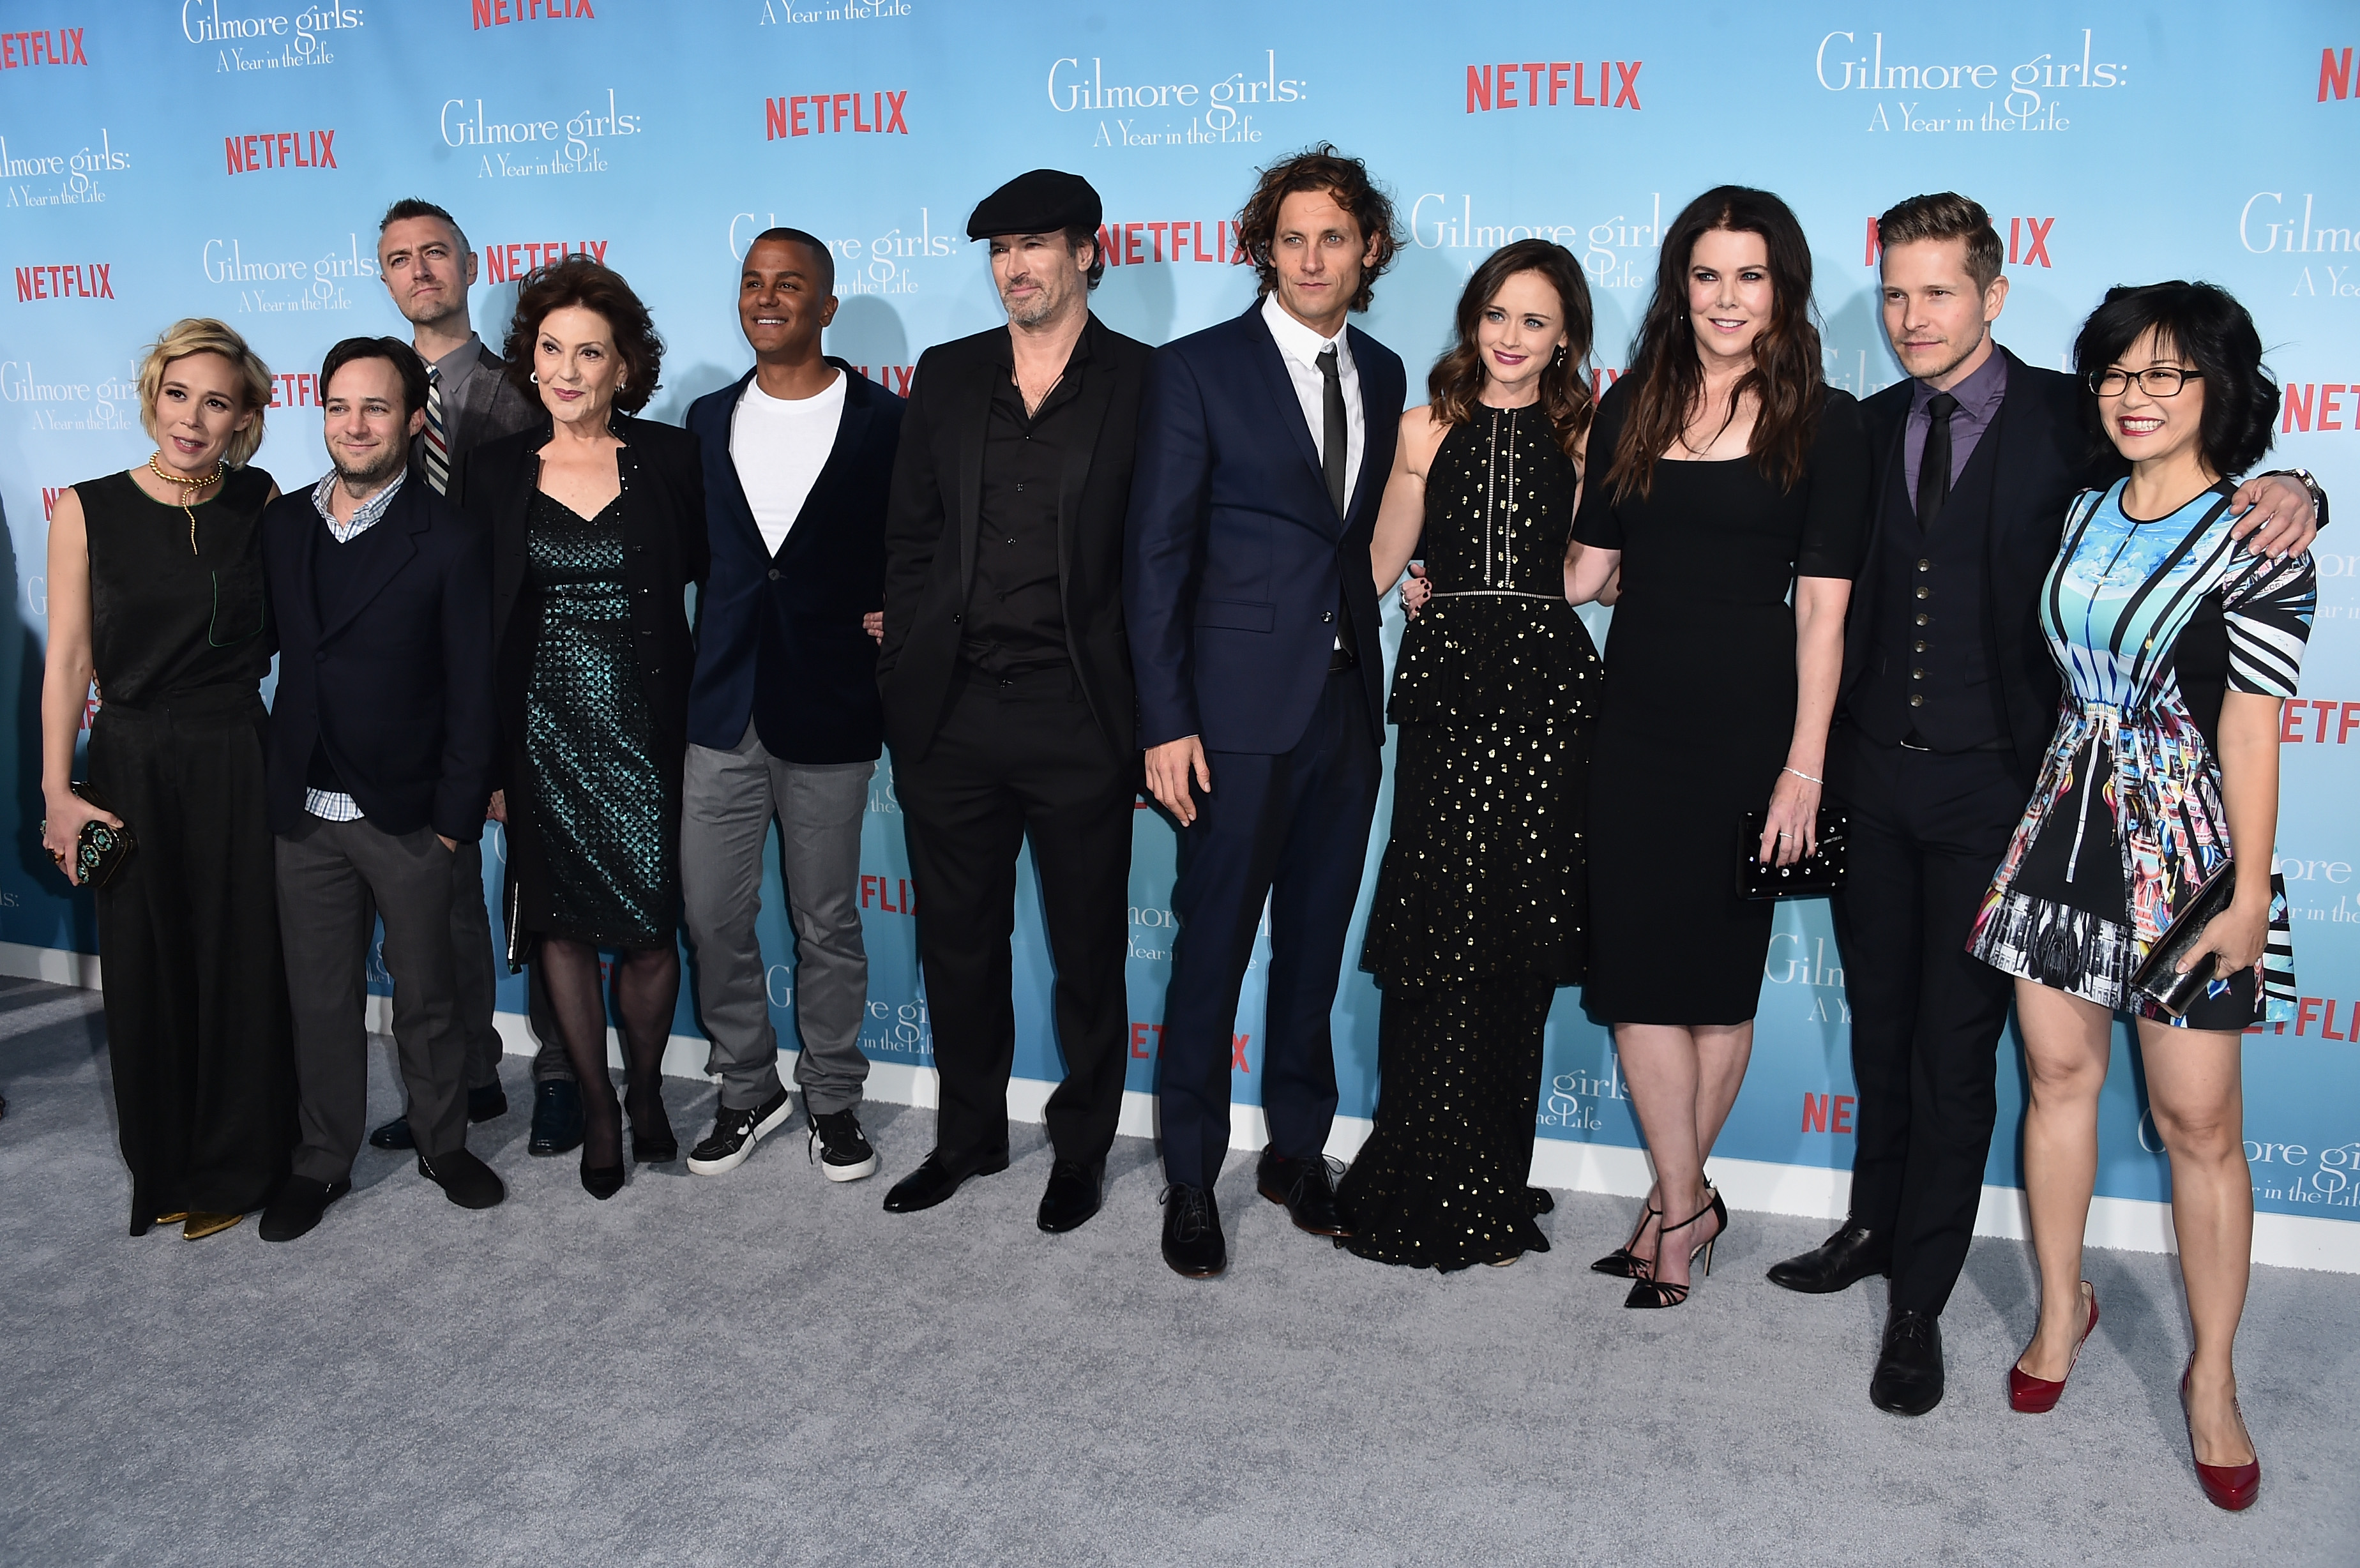 The Real Reason Gilmore Girls A Year In The Life Felt So Disconnected From The Original Series